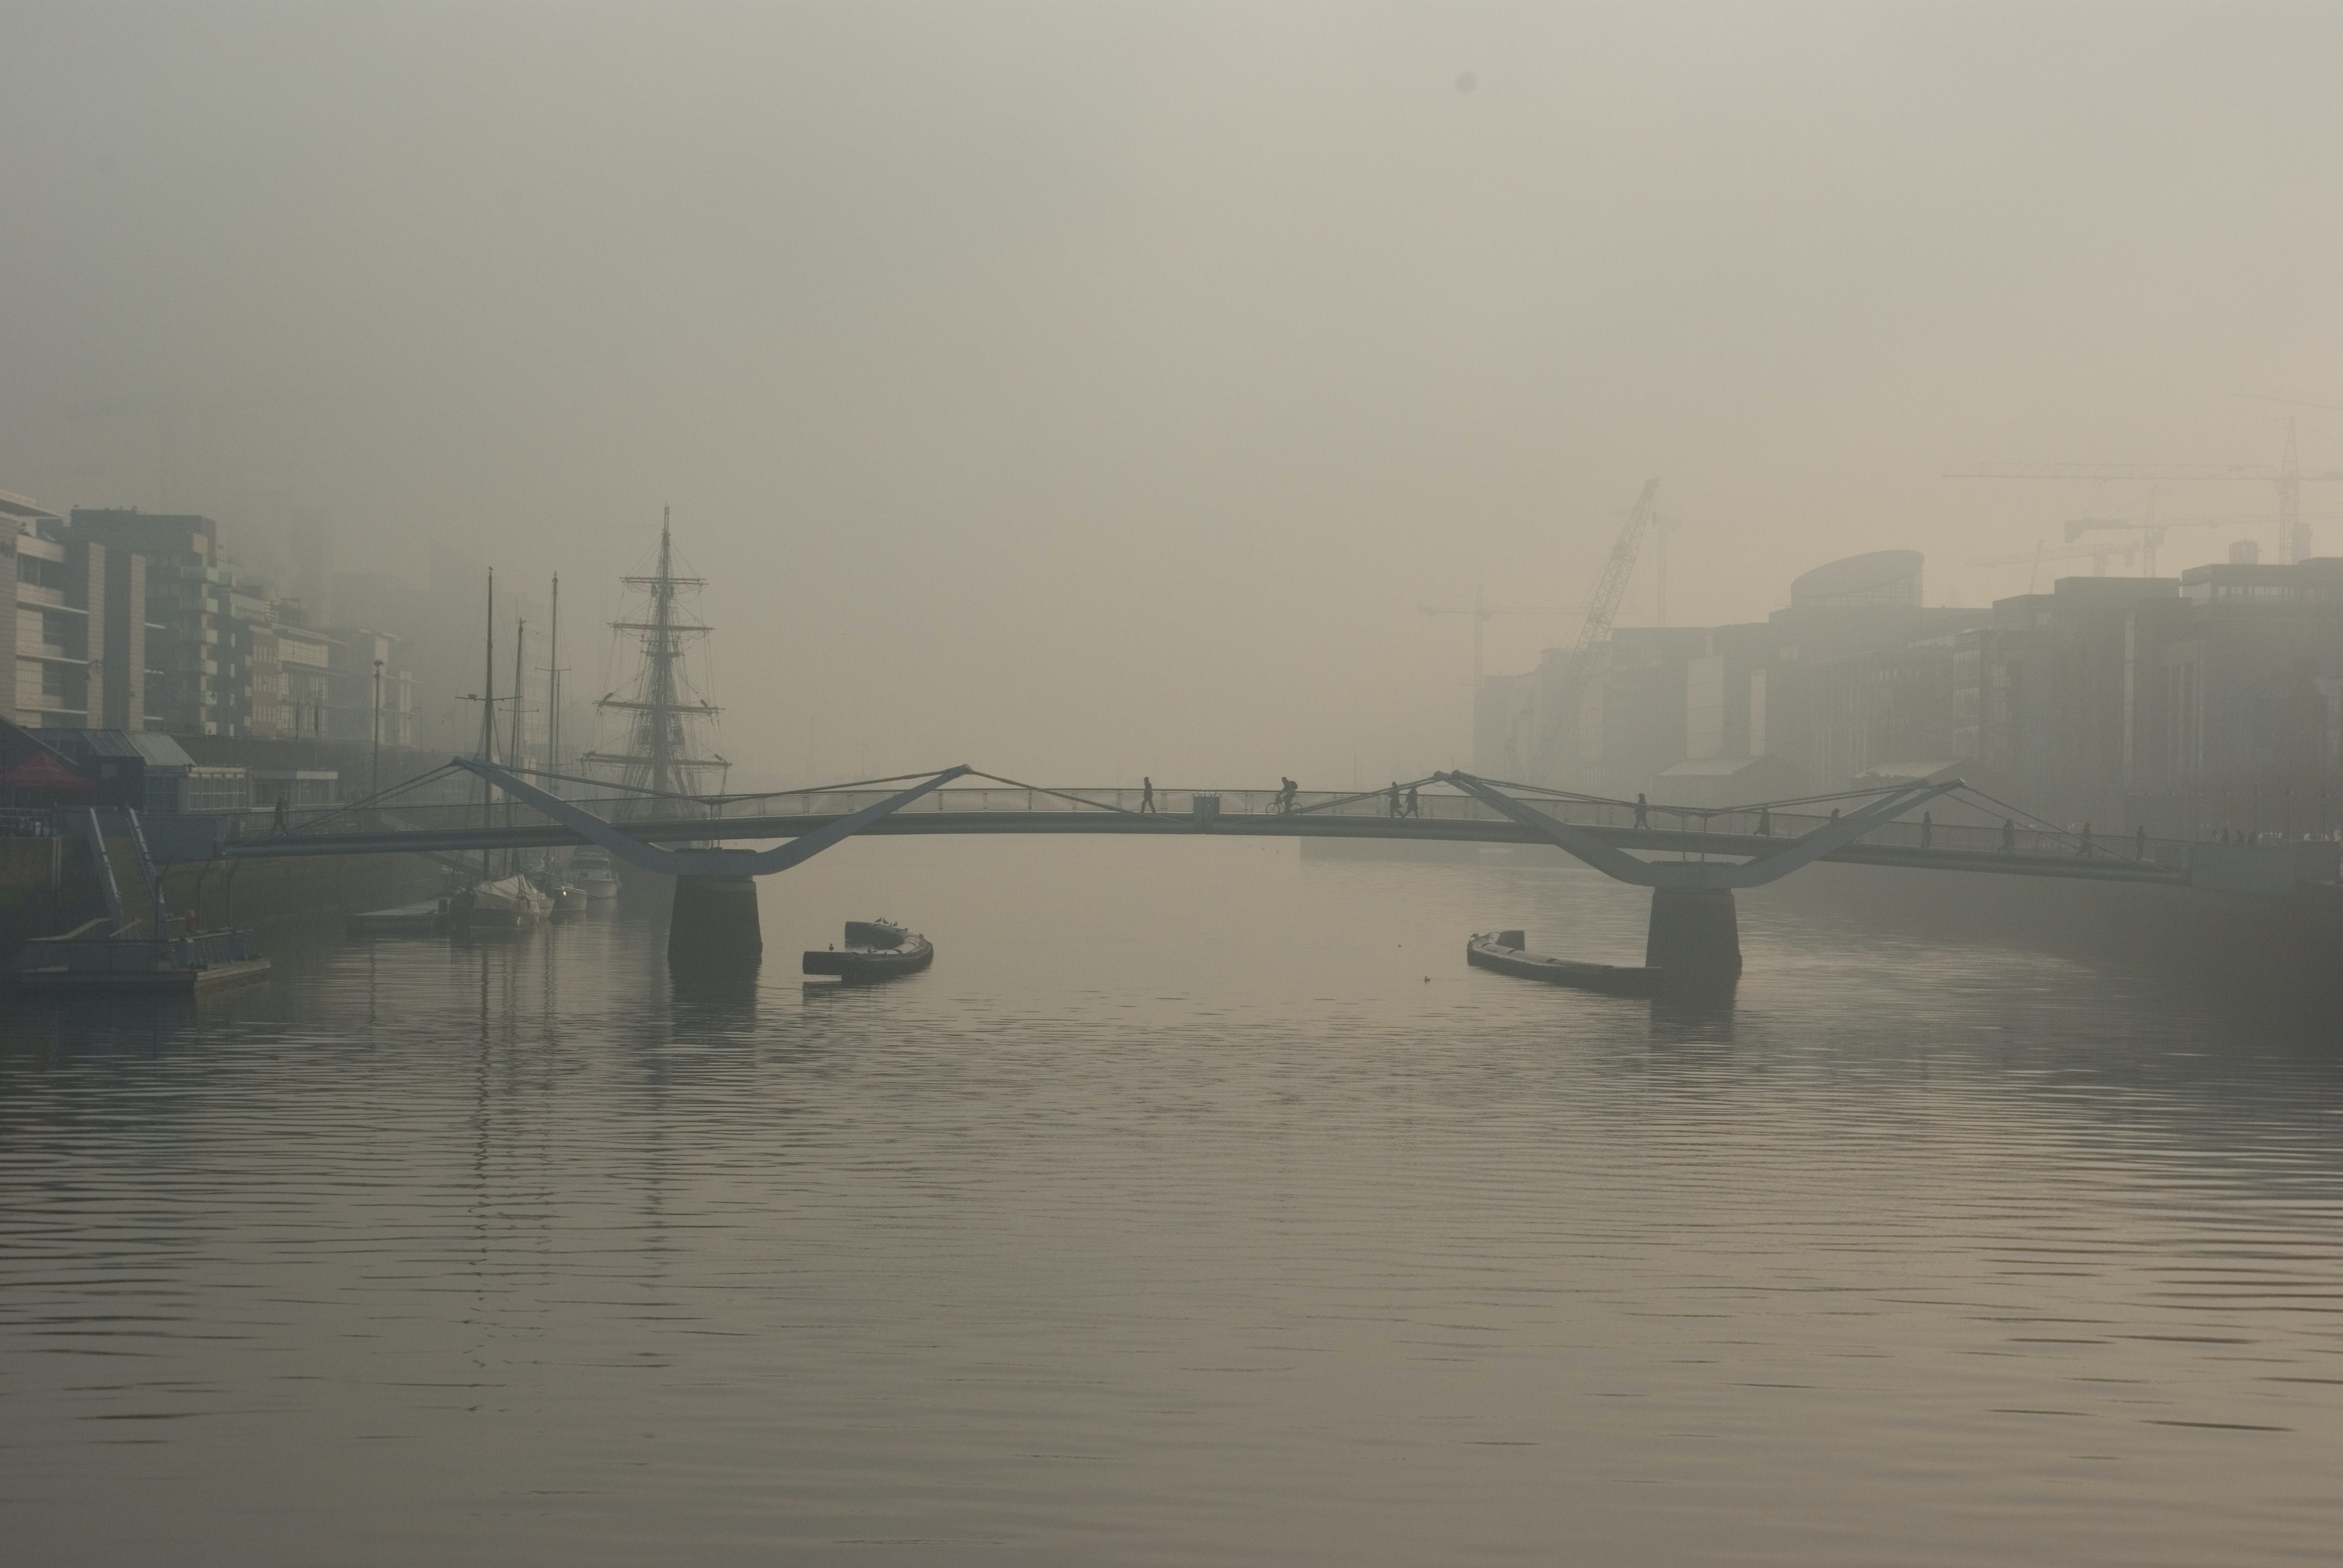 Industrial city structures by a bridge over foggy water